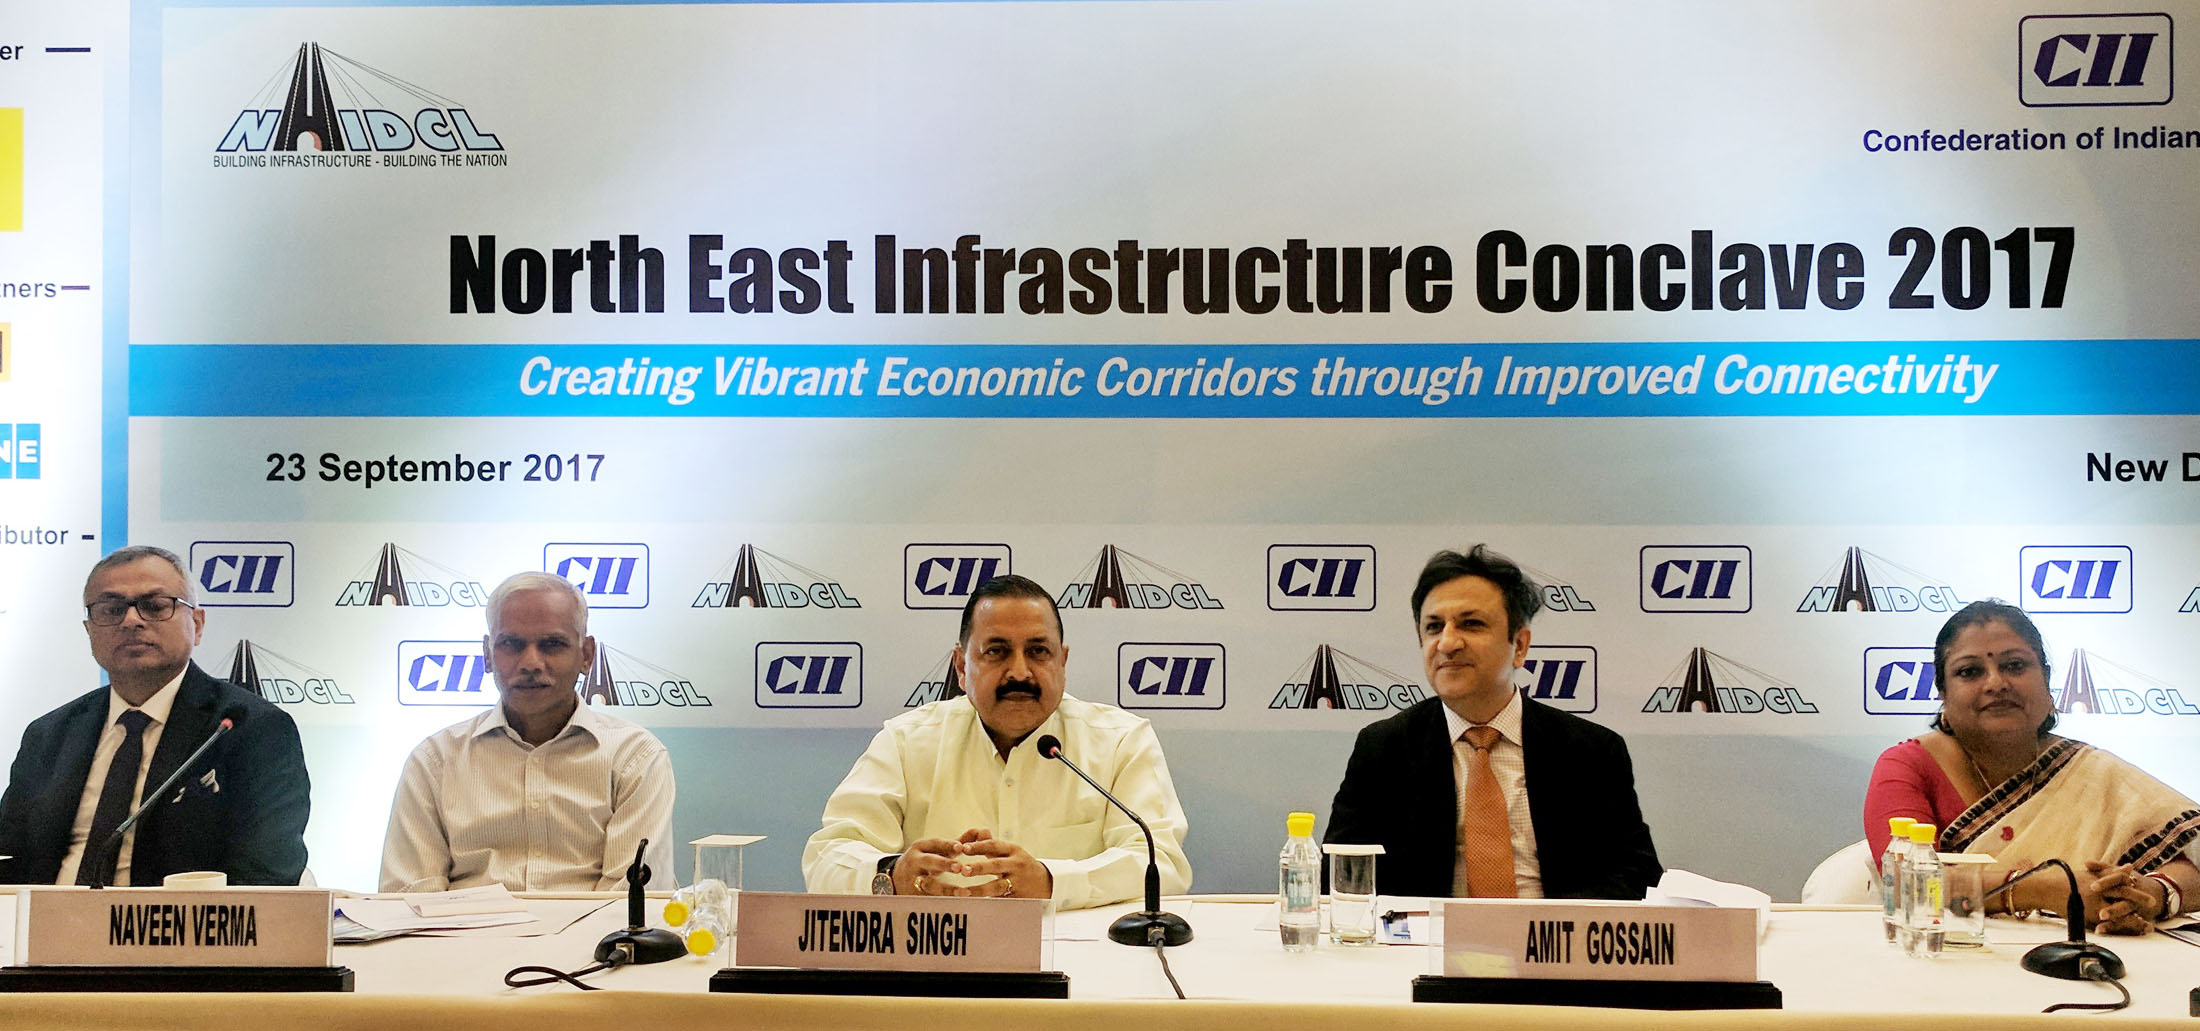 The Minister of State for Development of North Eastern Region, Prime Minister's Office, Personnel, Public Grievances & Pensions, Atomic Energy and Space, Dr. Jitendra Singh at the North East Infrastructure Conclave, in New Delhi.